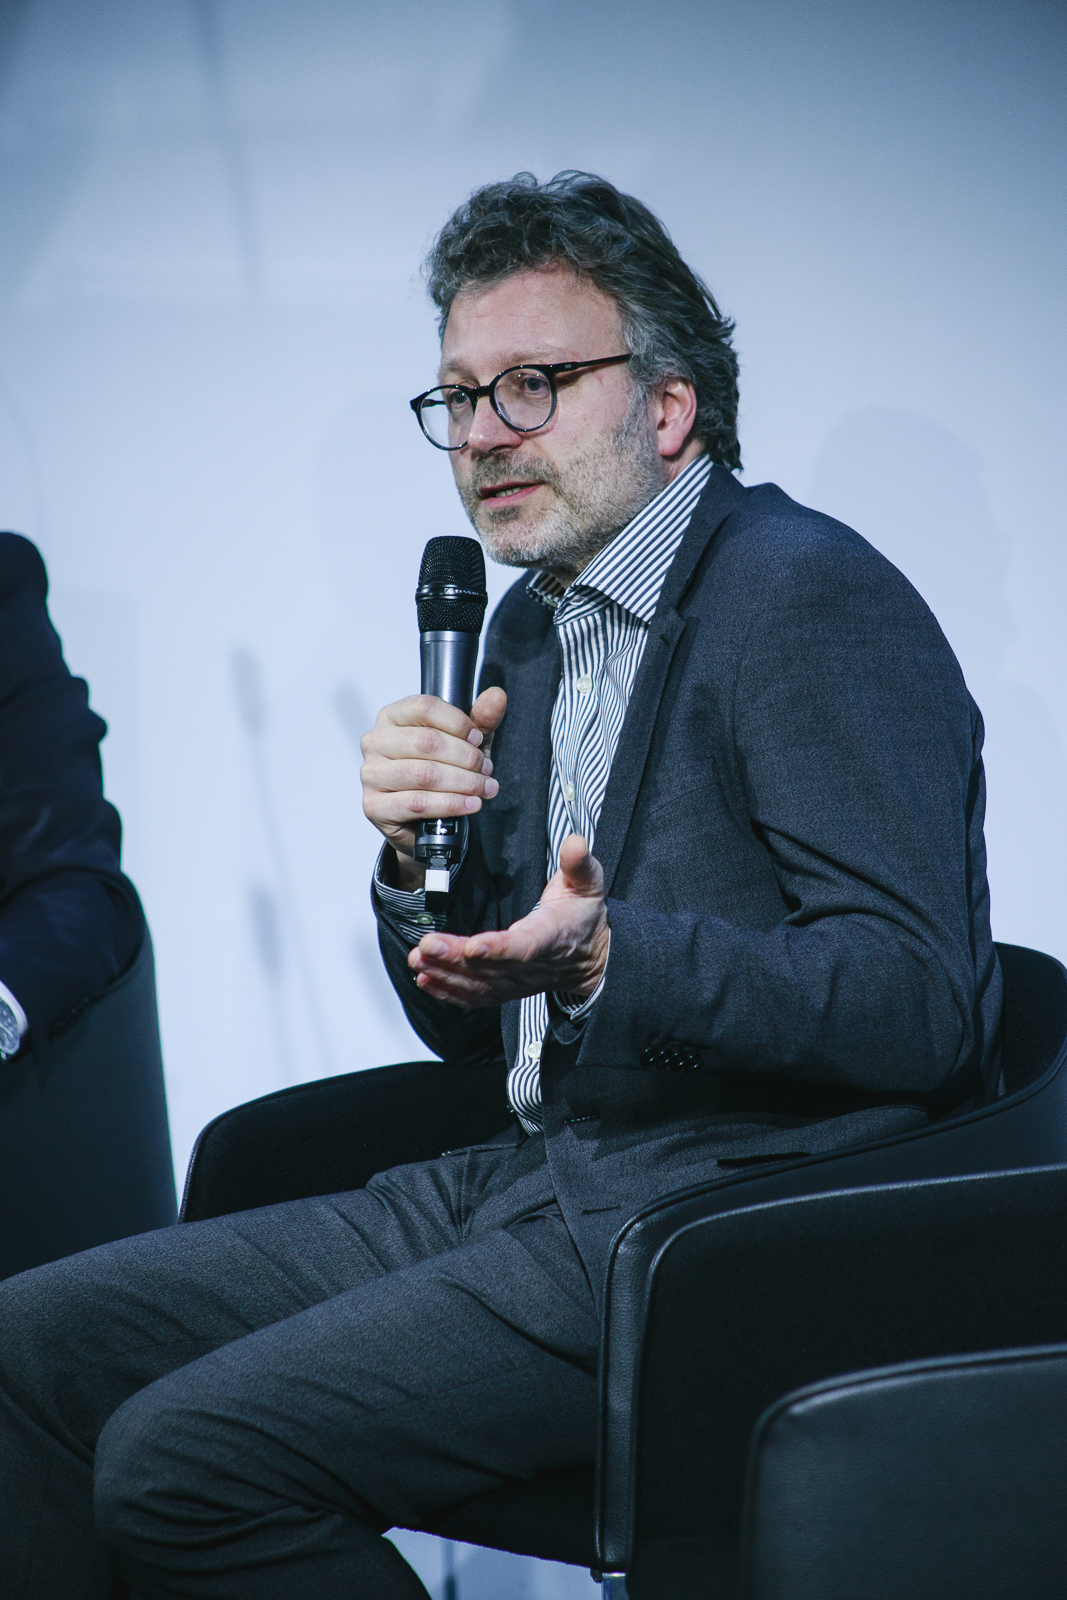 Christophe Lefevre (Natixis) - IN BANQUE 2019 - Crédit photo : Guillermo Gomez